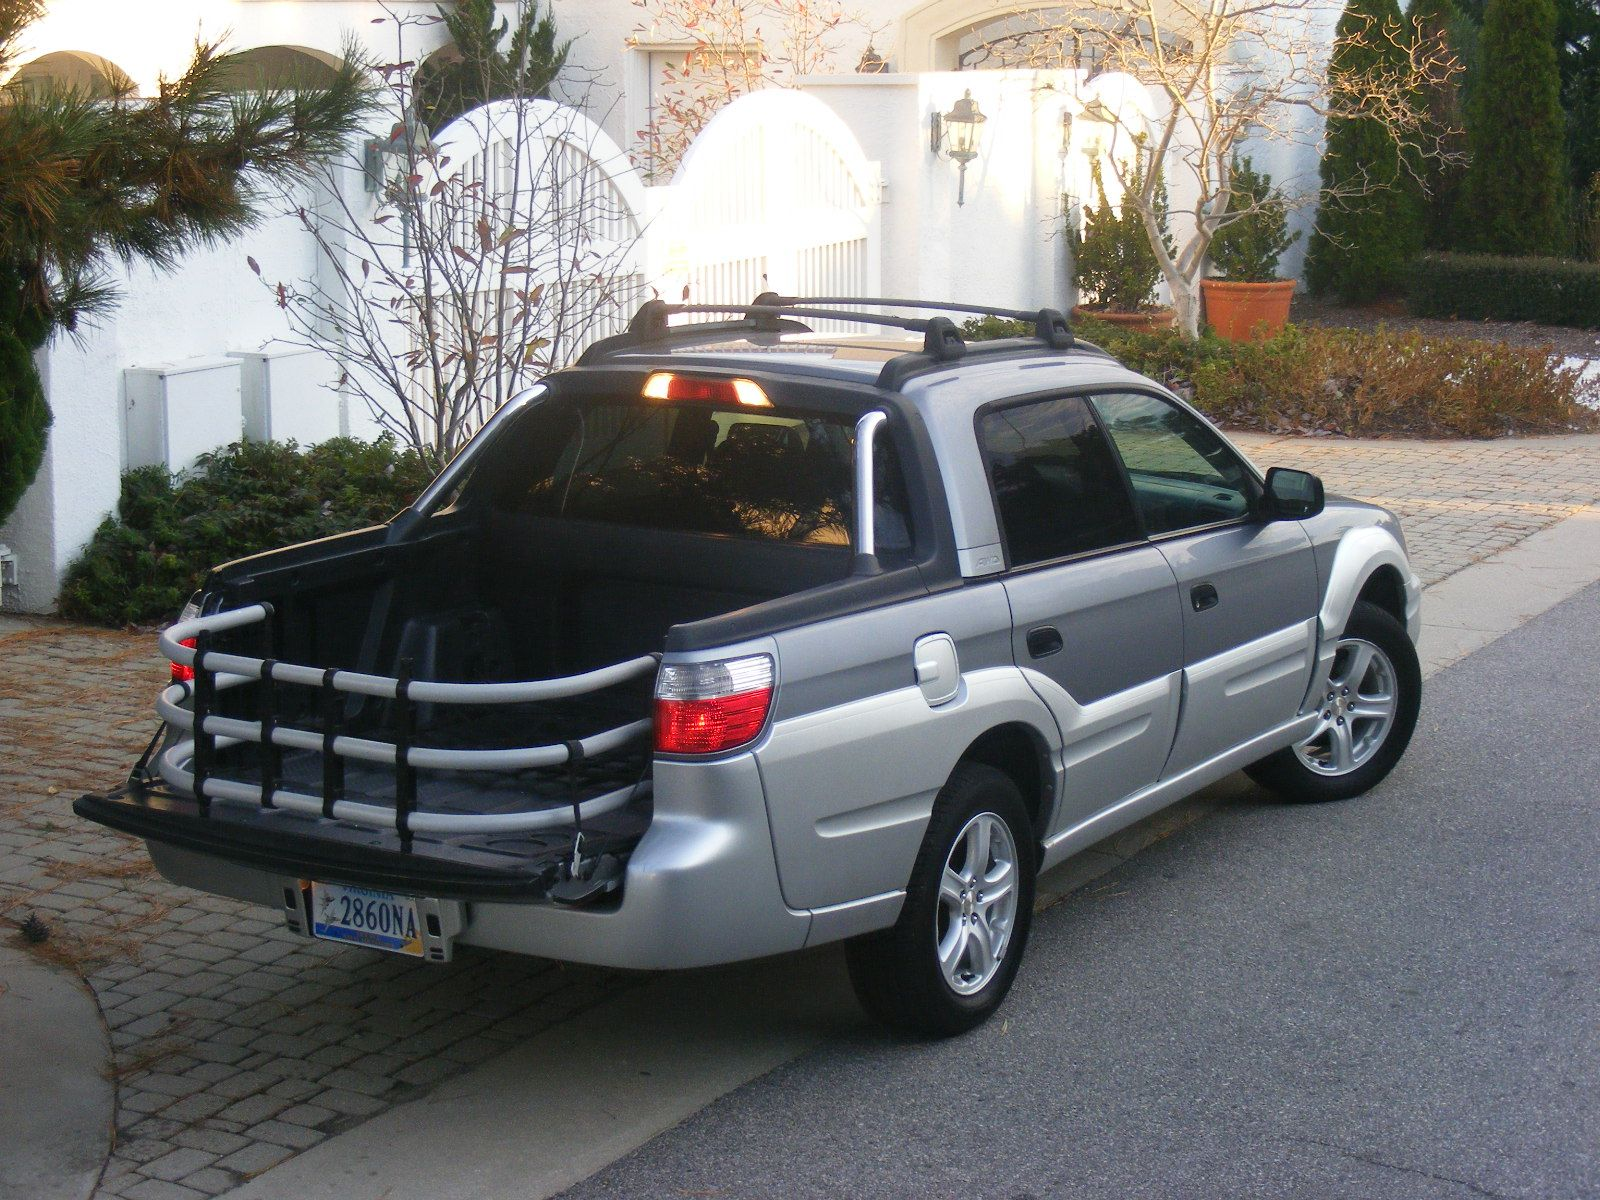 2005 Subaru Baja Turbo Looks Just Like My New Car